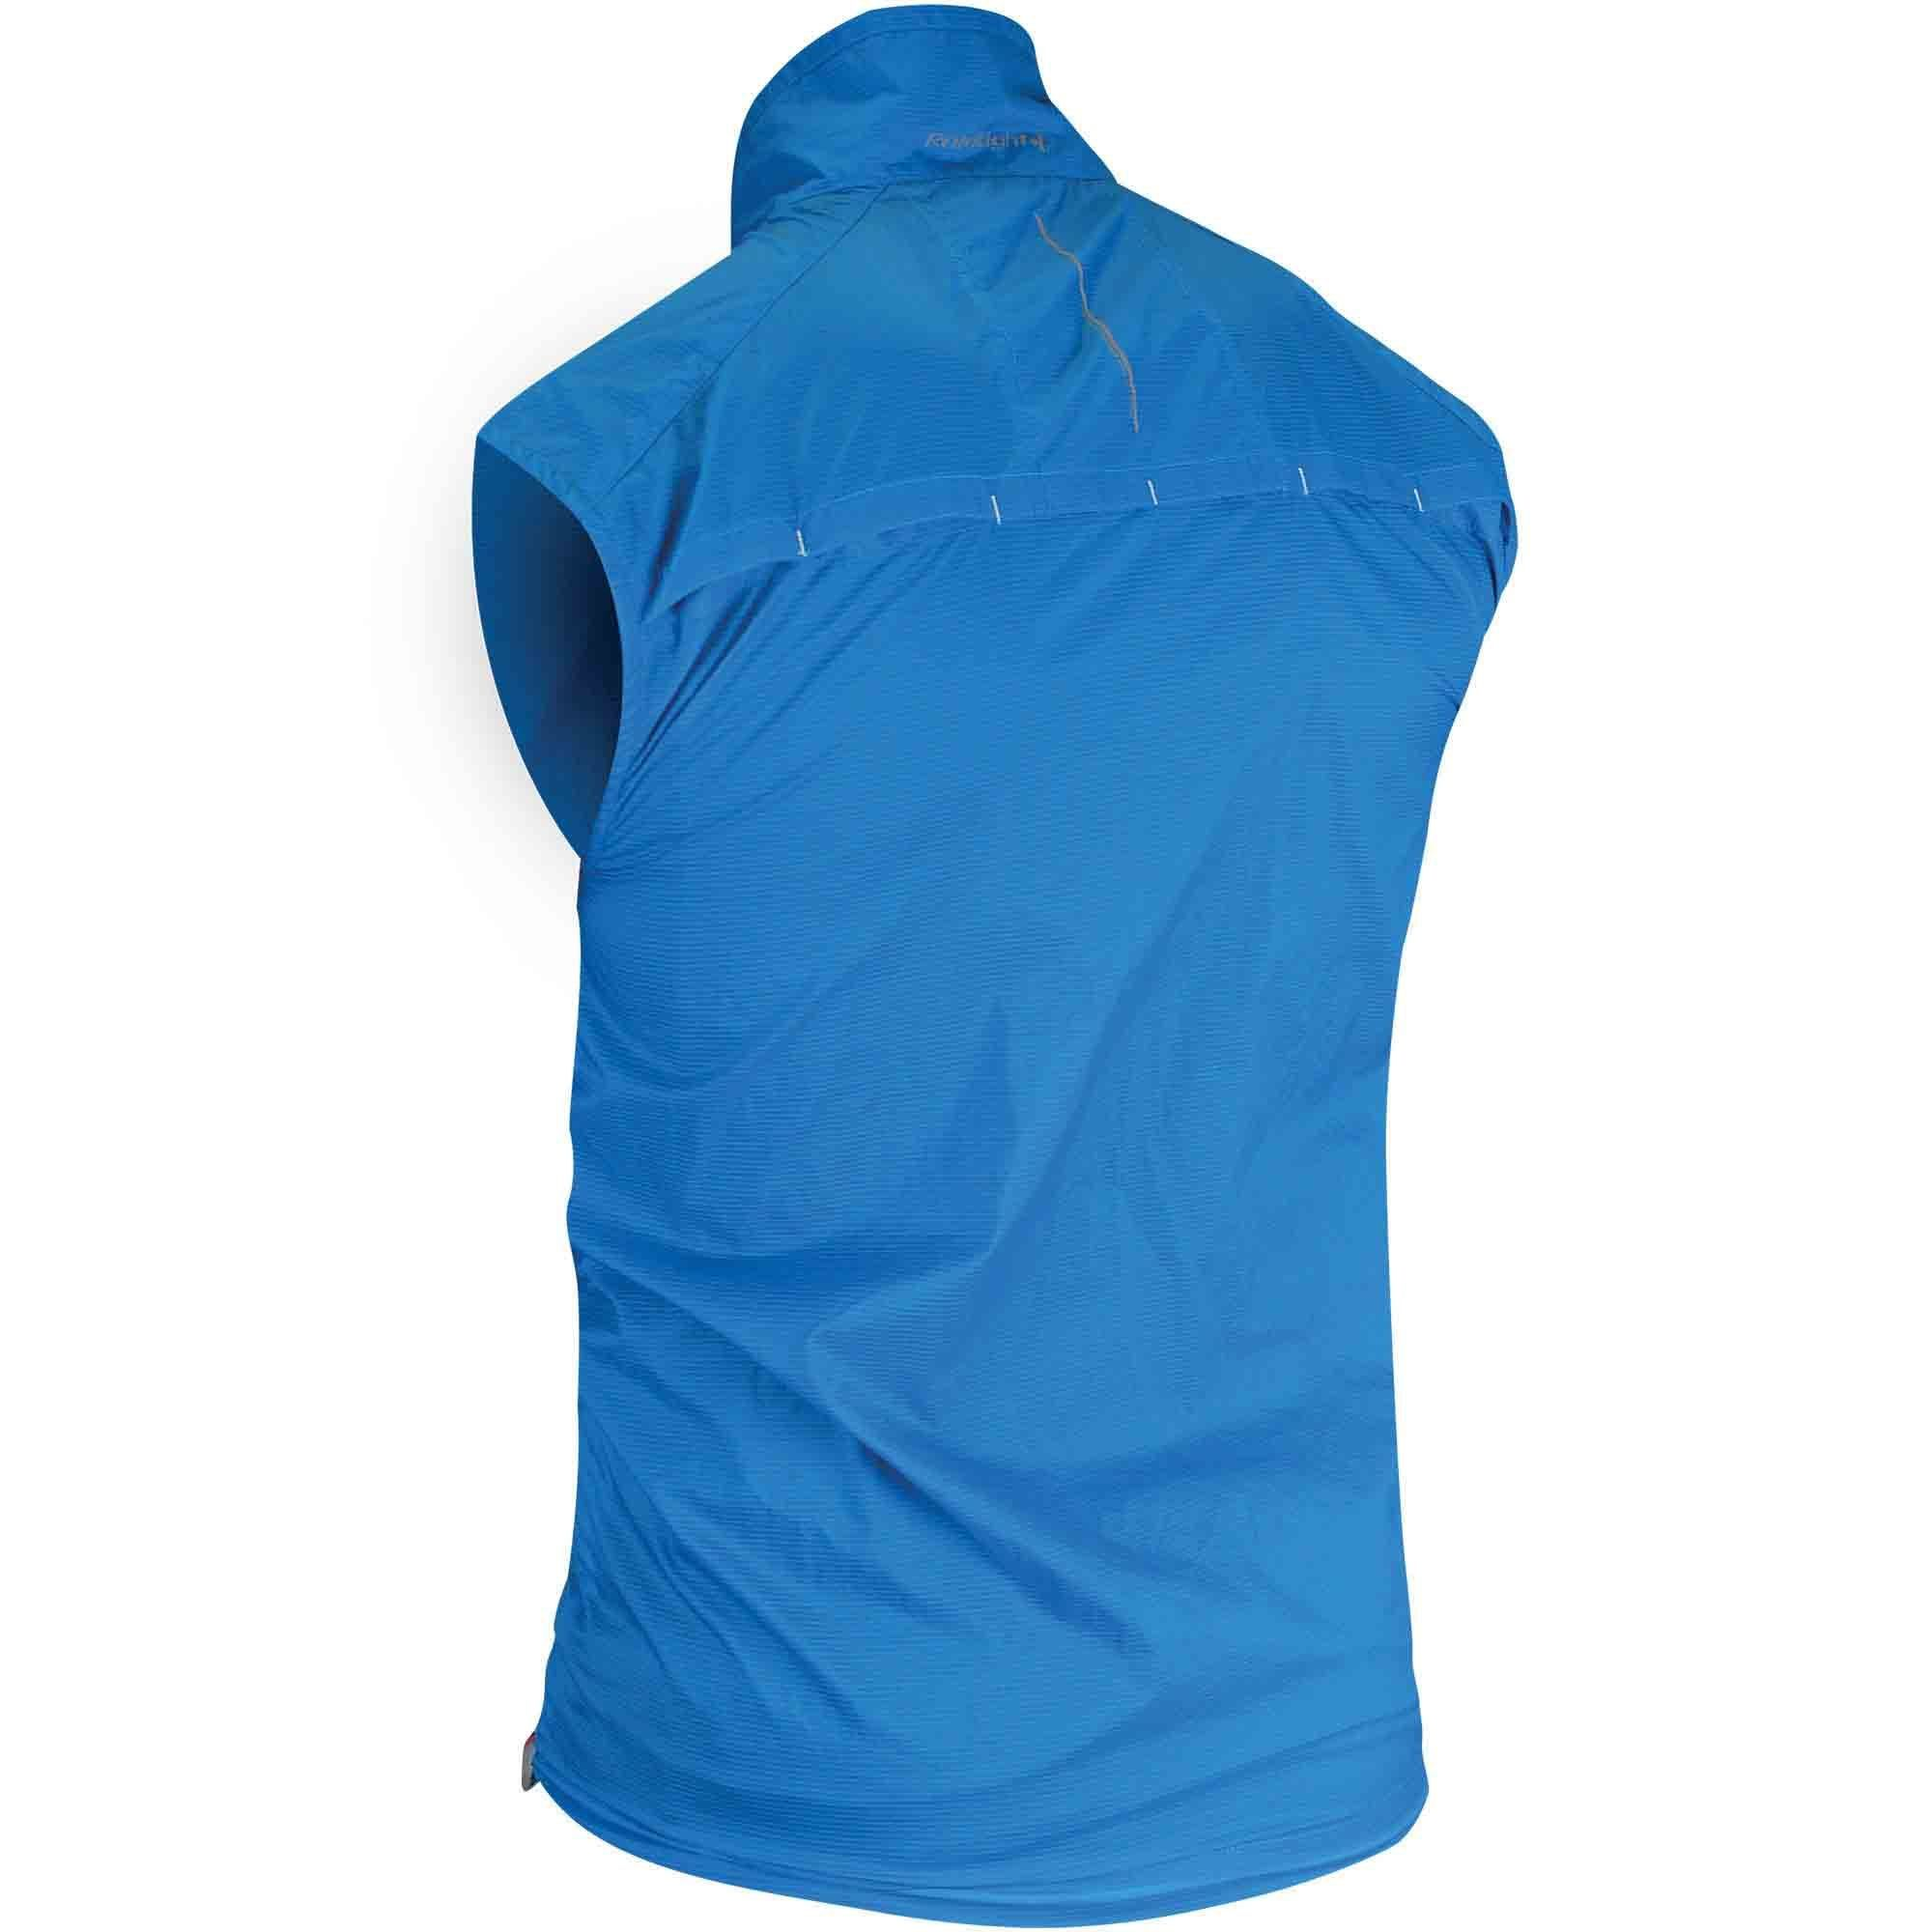 GILET RAIDLIGHT ULTRA WINDPROOF VEST GLHML03 back.jpg